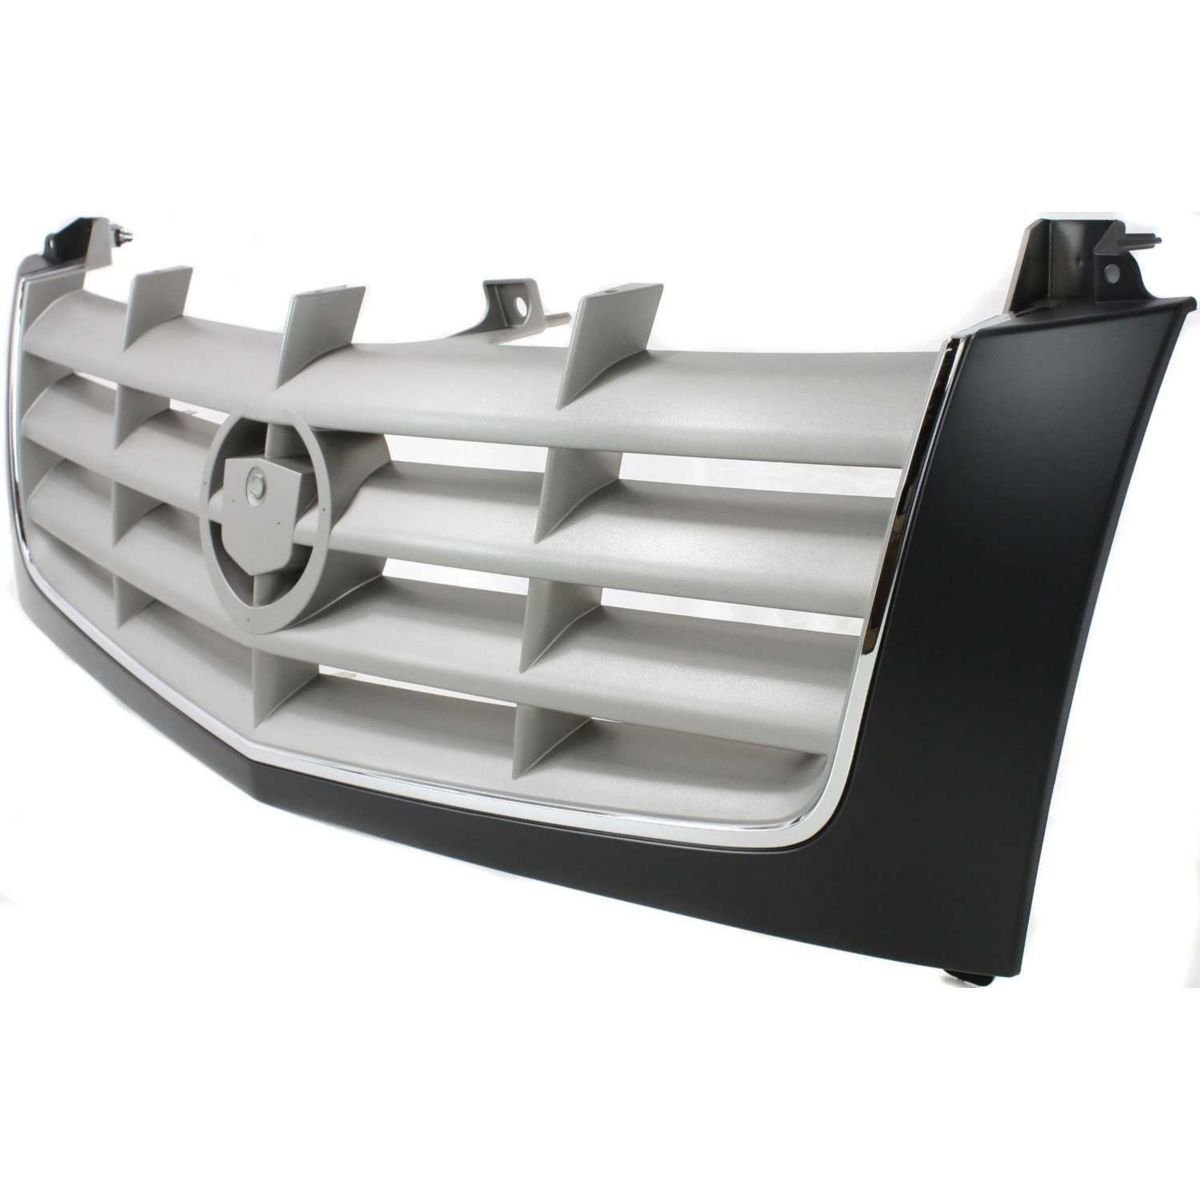 Diften 102-A2835-X01 - New Grille Assembly Grill Black shell silver insert Escalade GM1200509 15162129